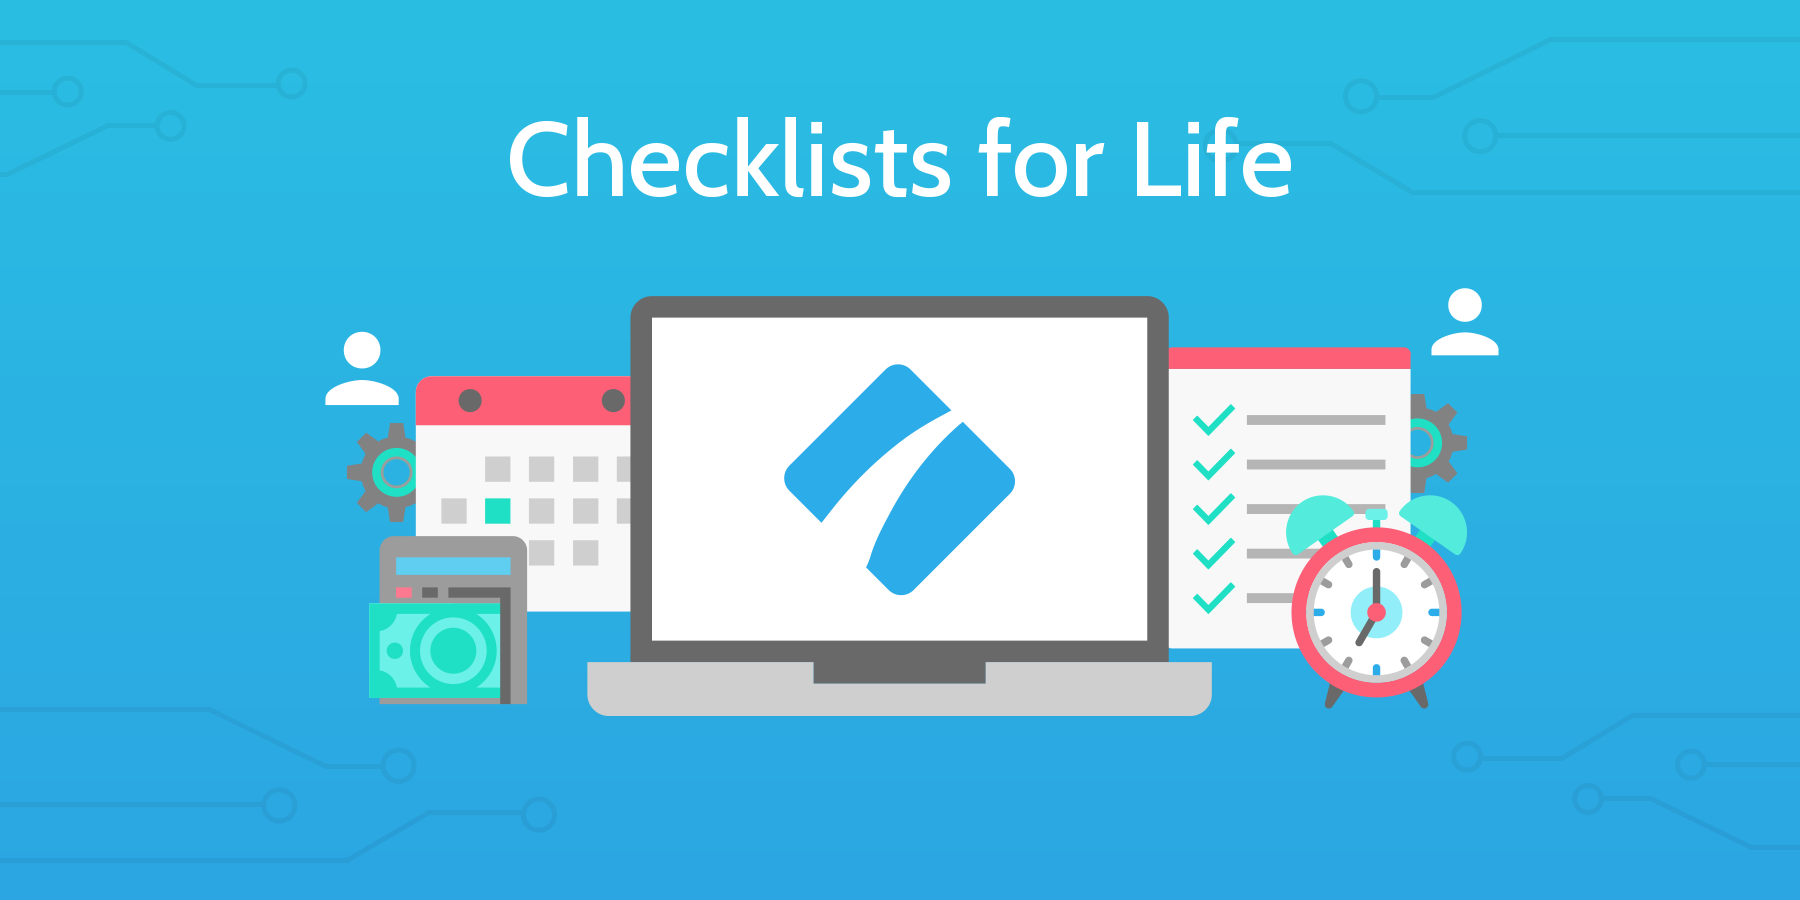 Checklists for Life